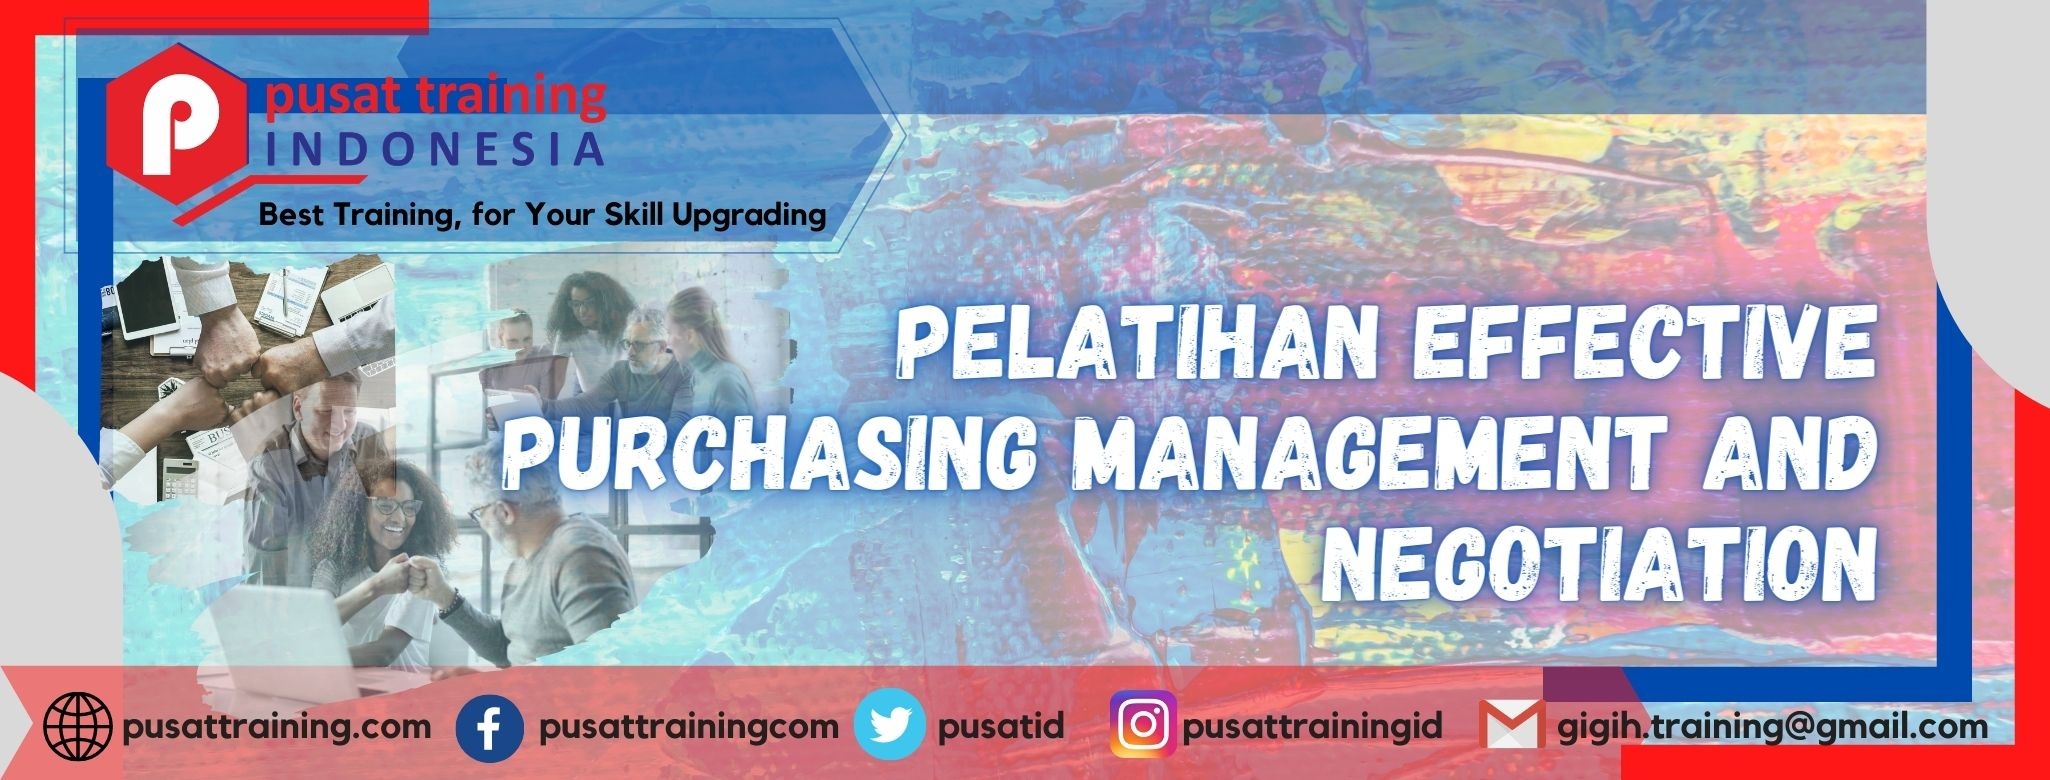 PELATIHAN EFFECTIVE PURCHASING MANAGEMENT AND NEGOTIATION